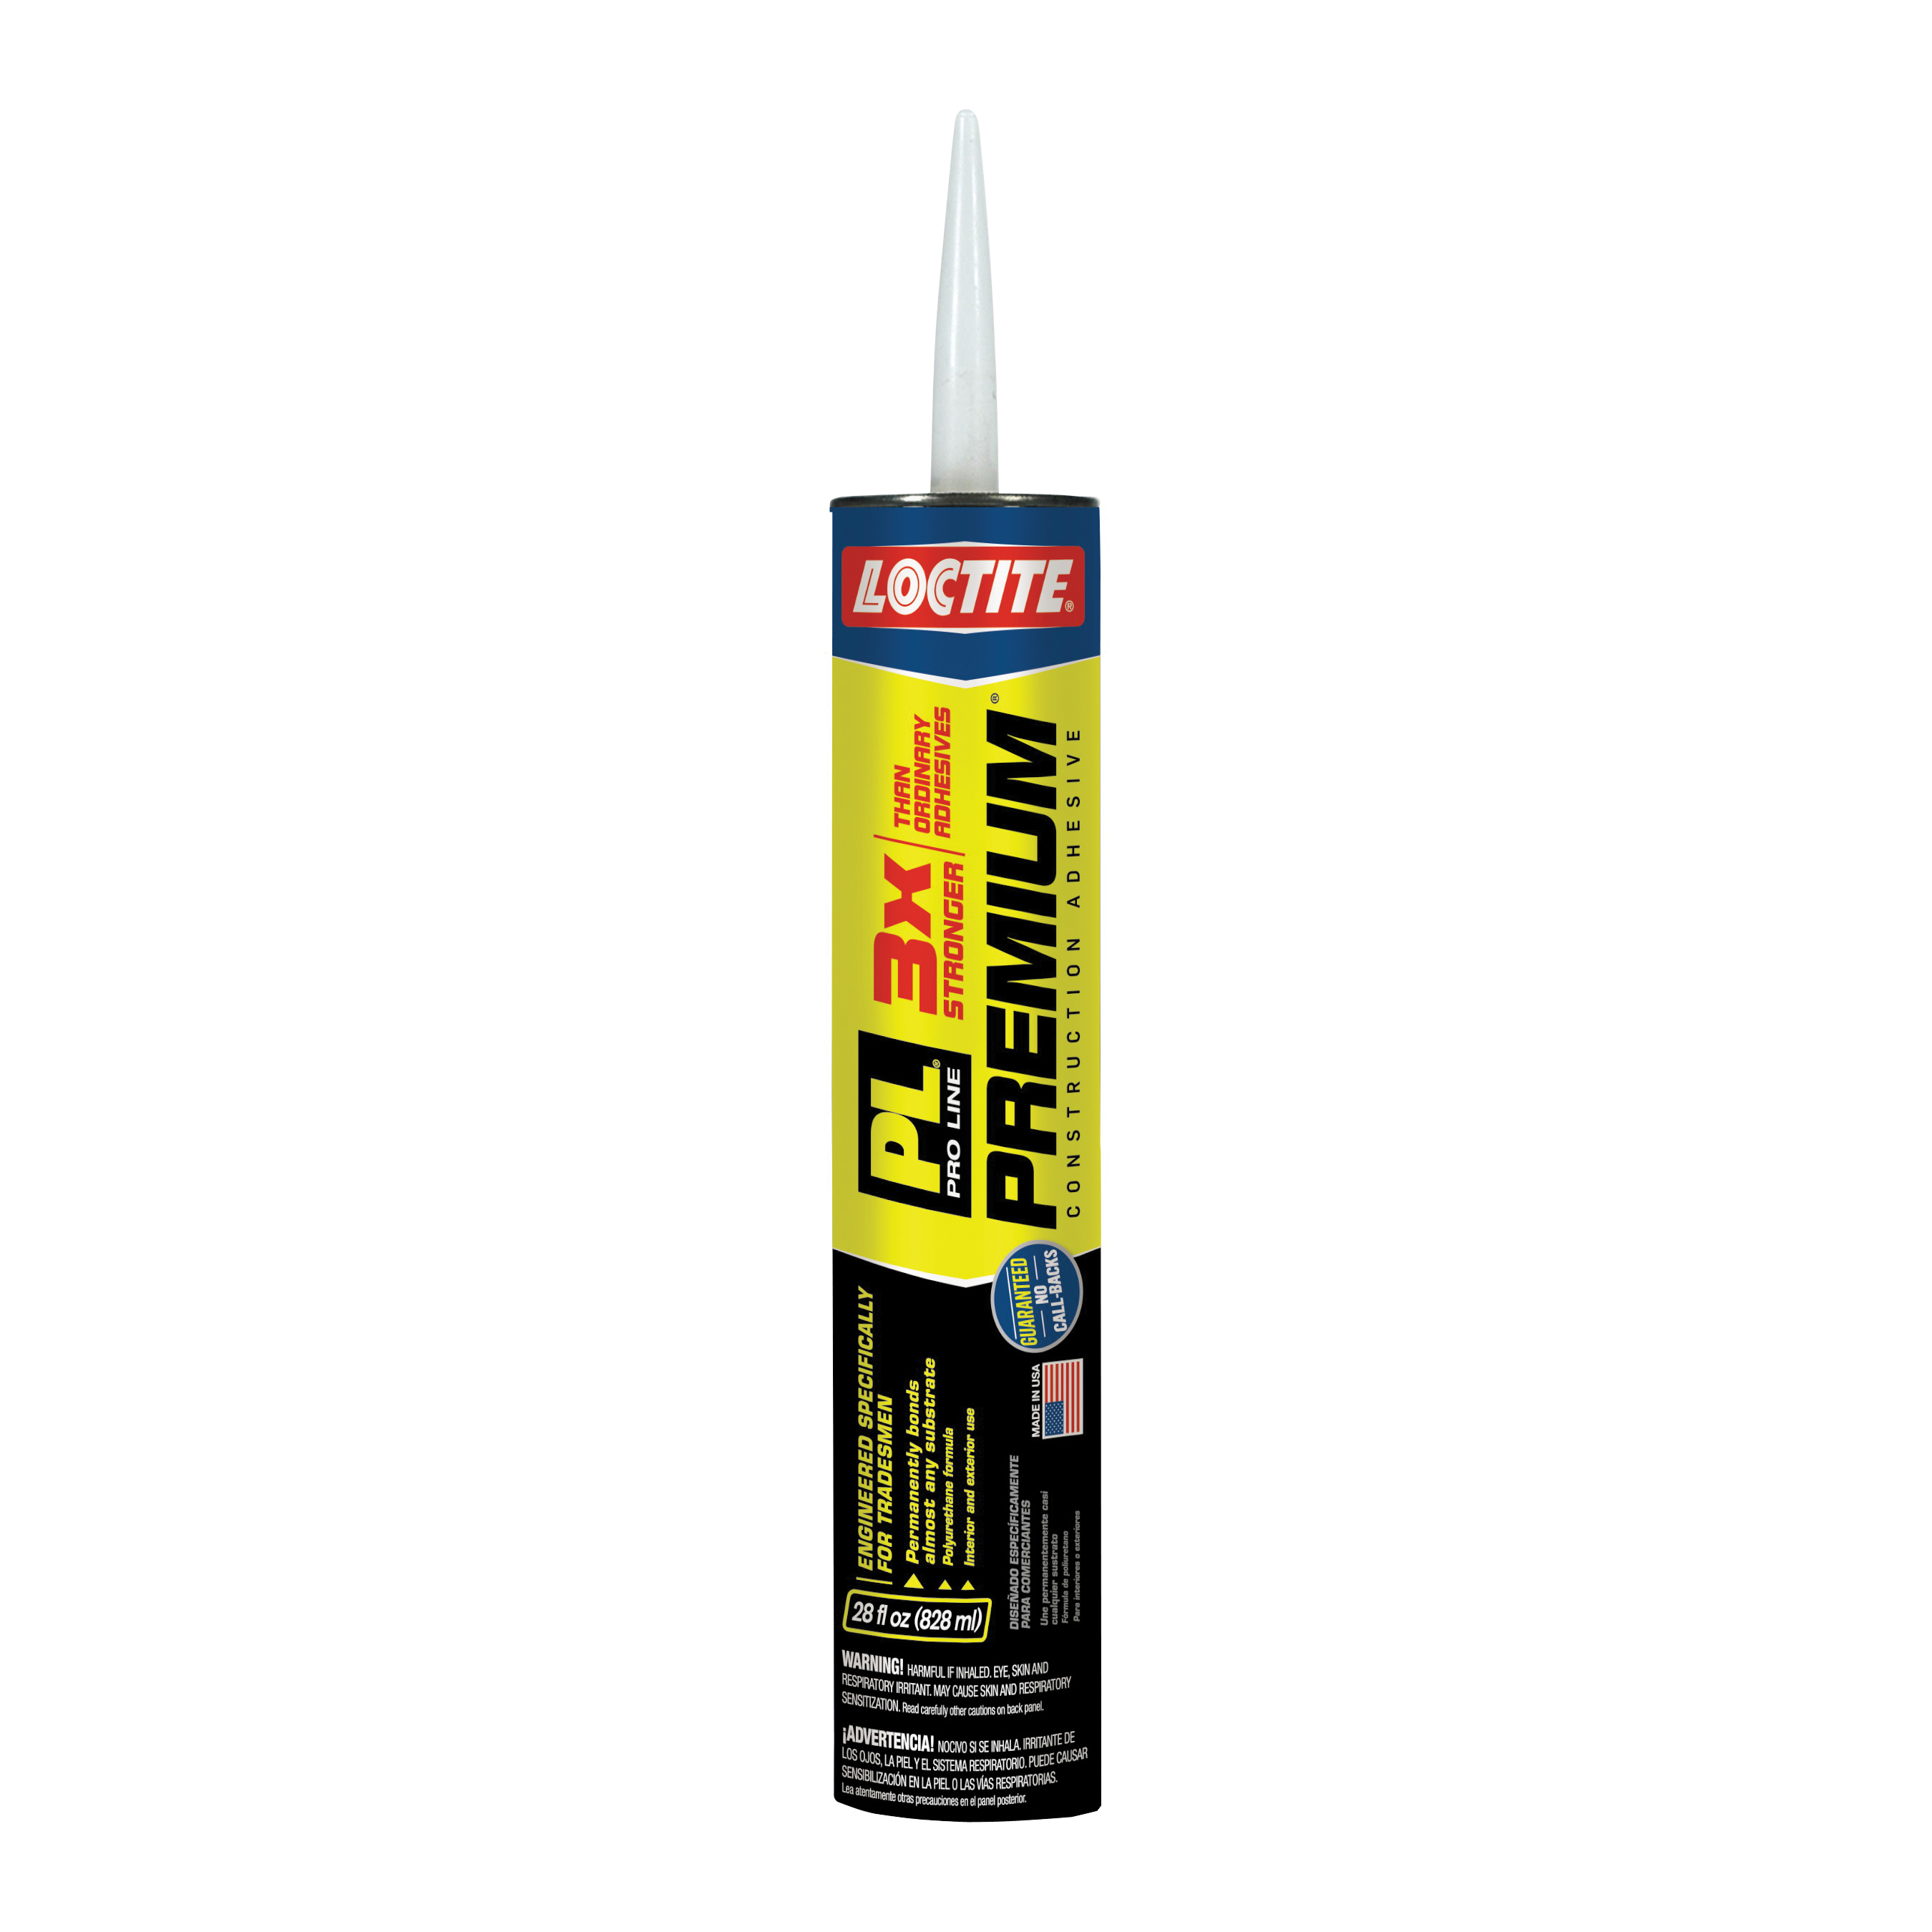 Picture of Loctite 1390594 Polyurethane Construction Adhesive, Tan, 28 fl-oz Package, Cartridge